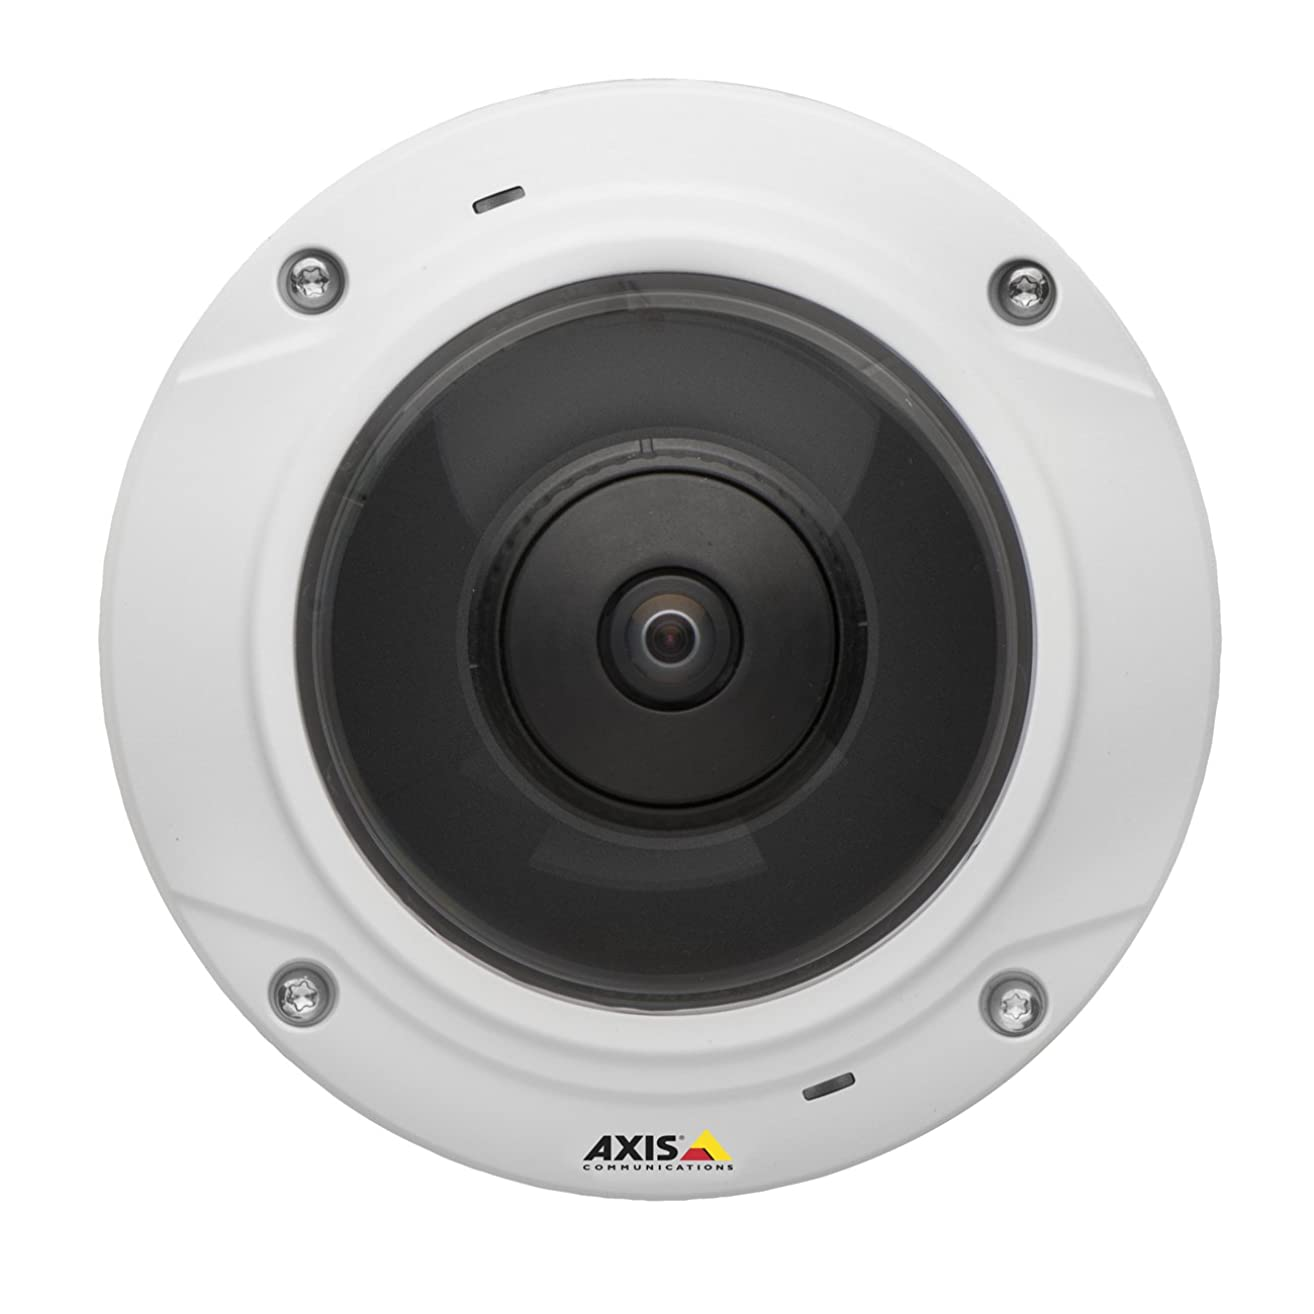 Axis Communications 0515-001 360/180 Degree 5 MP Fixed Mini Dome IP Camera with Digital Pan-Tilt-Zoom